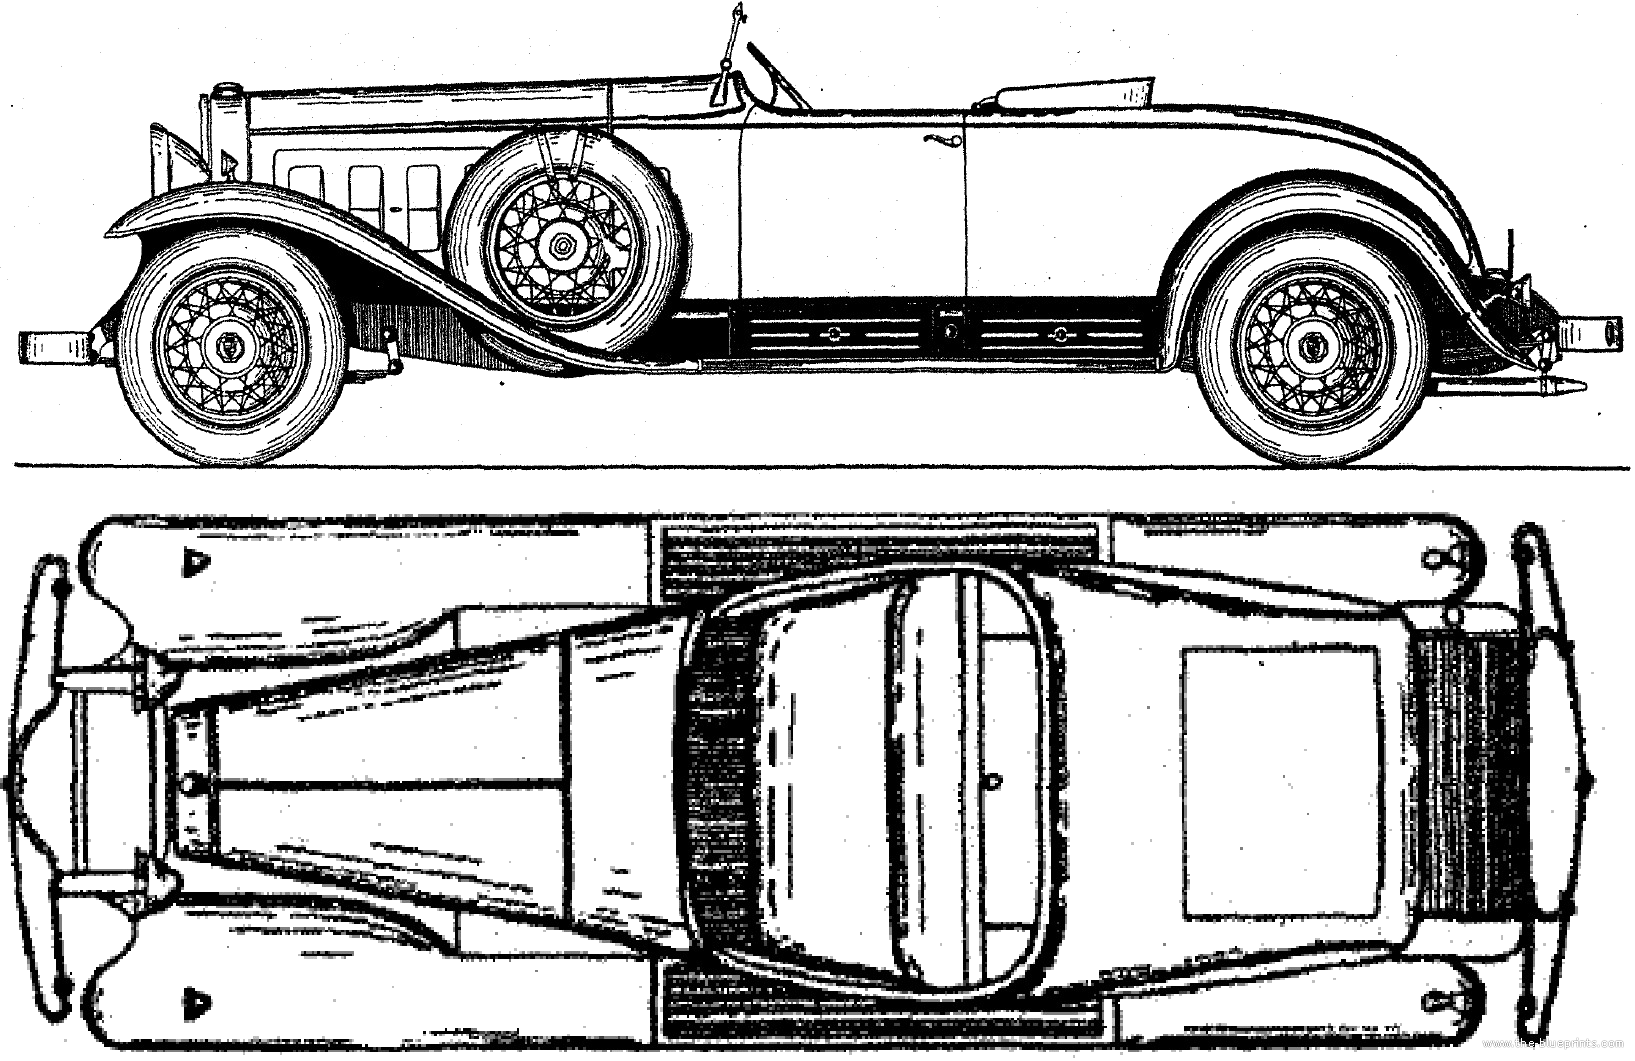 cadillac blueprints